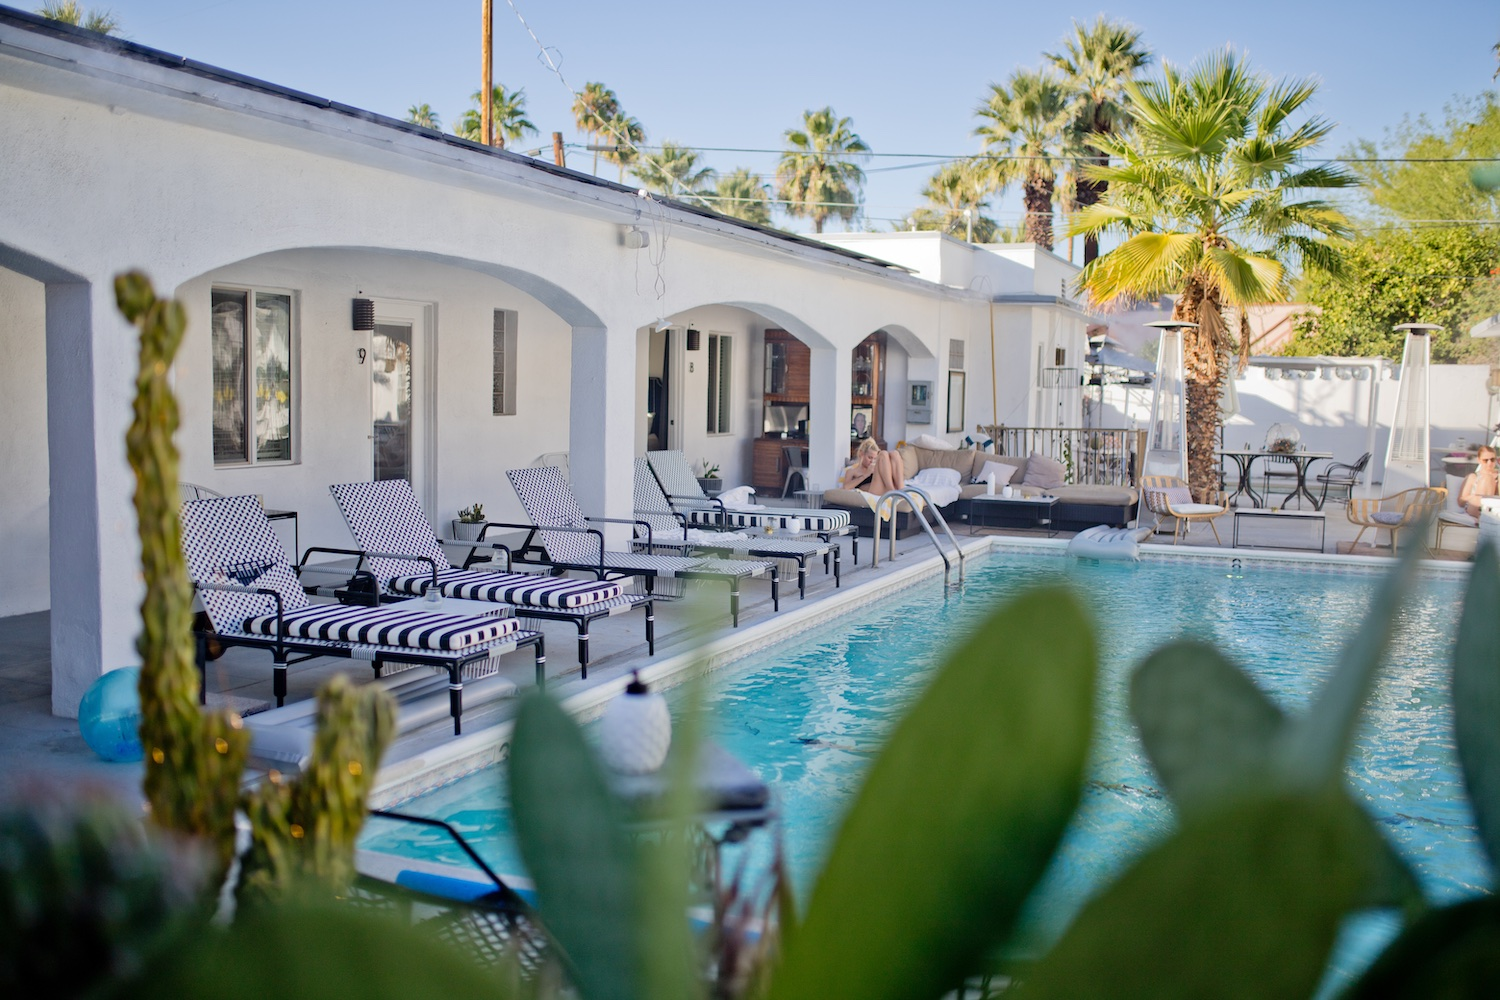 Palm Springs California Kalifornien 2 days itinerary where to stay art architecture | www.thegoldenbun.com